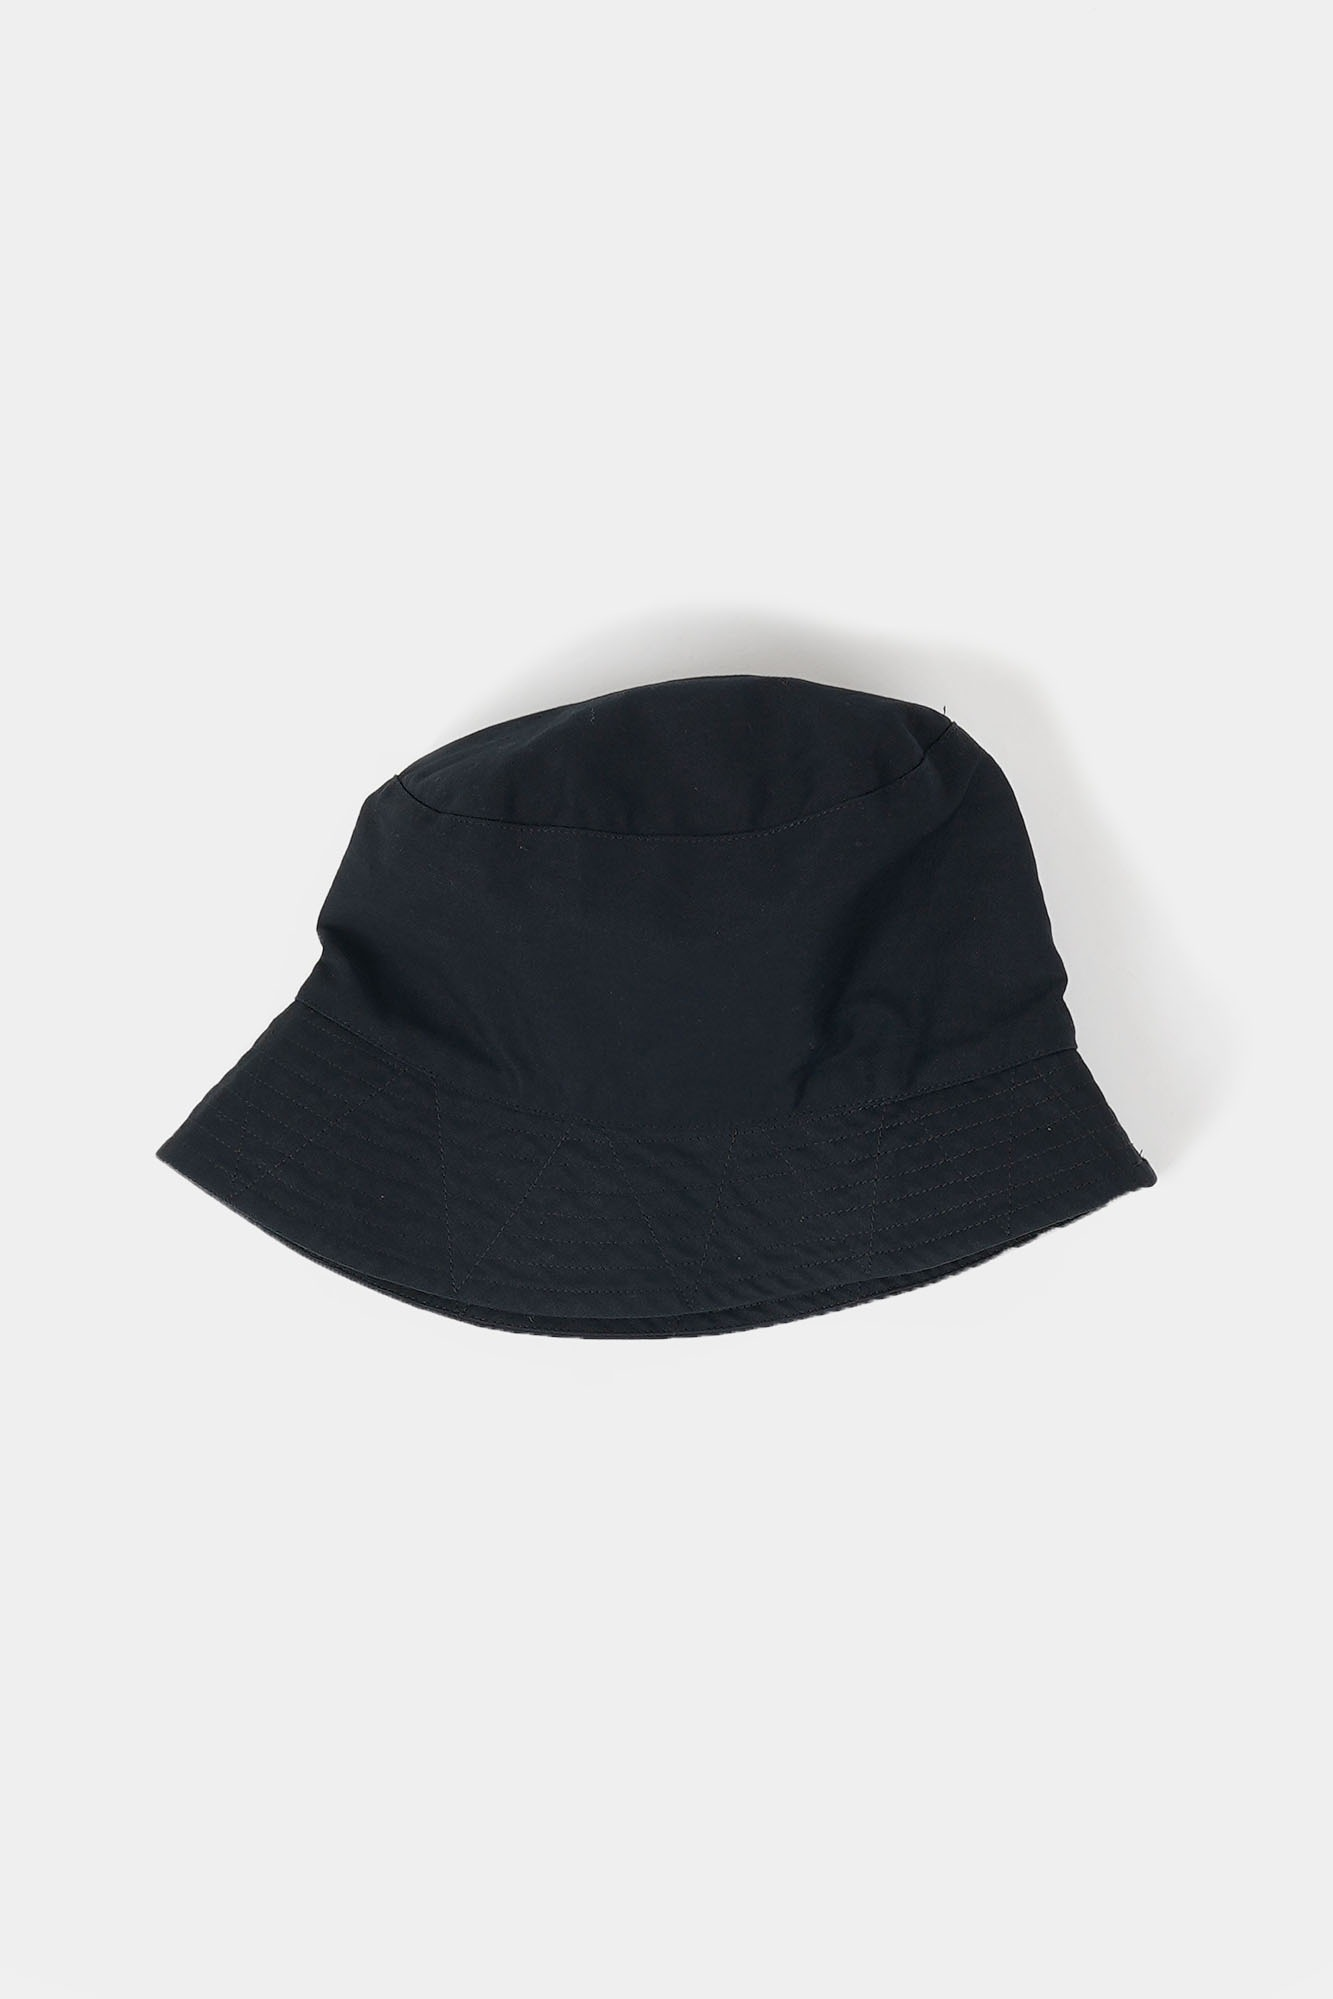 "ENGINEERED GARMENTS Bucket Hat ""Black Cotton Herringbone Twill"""